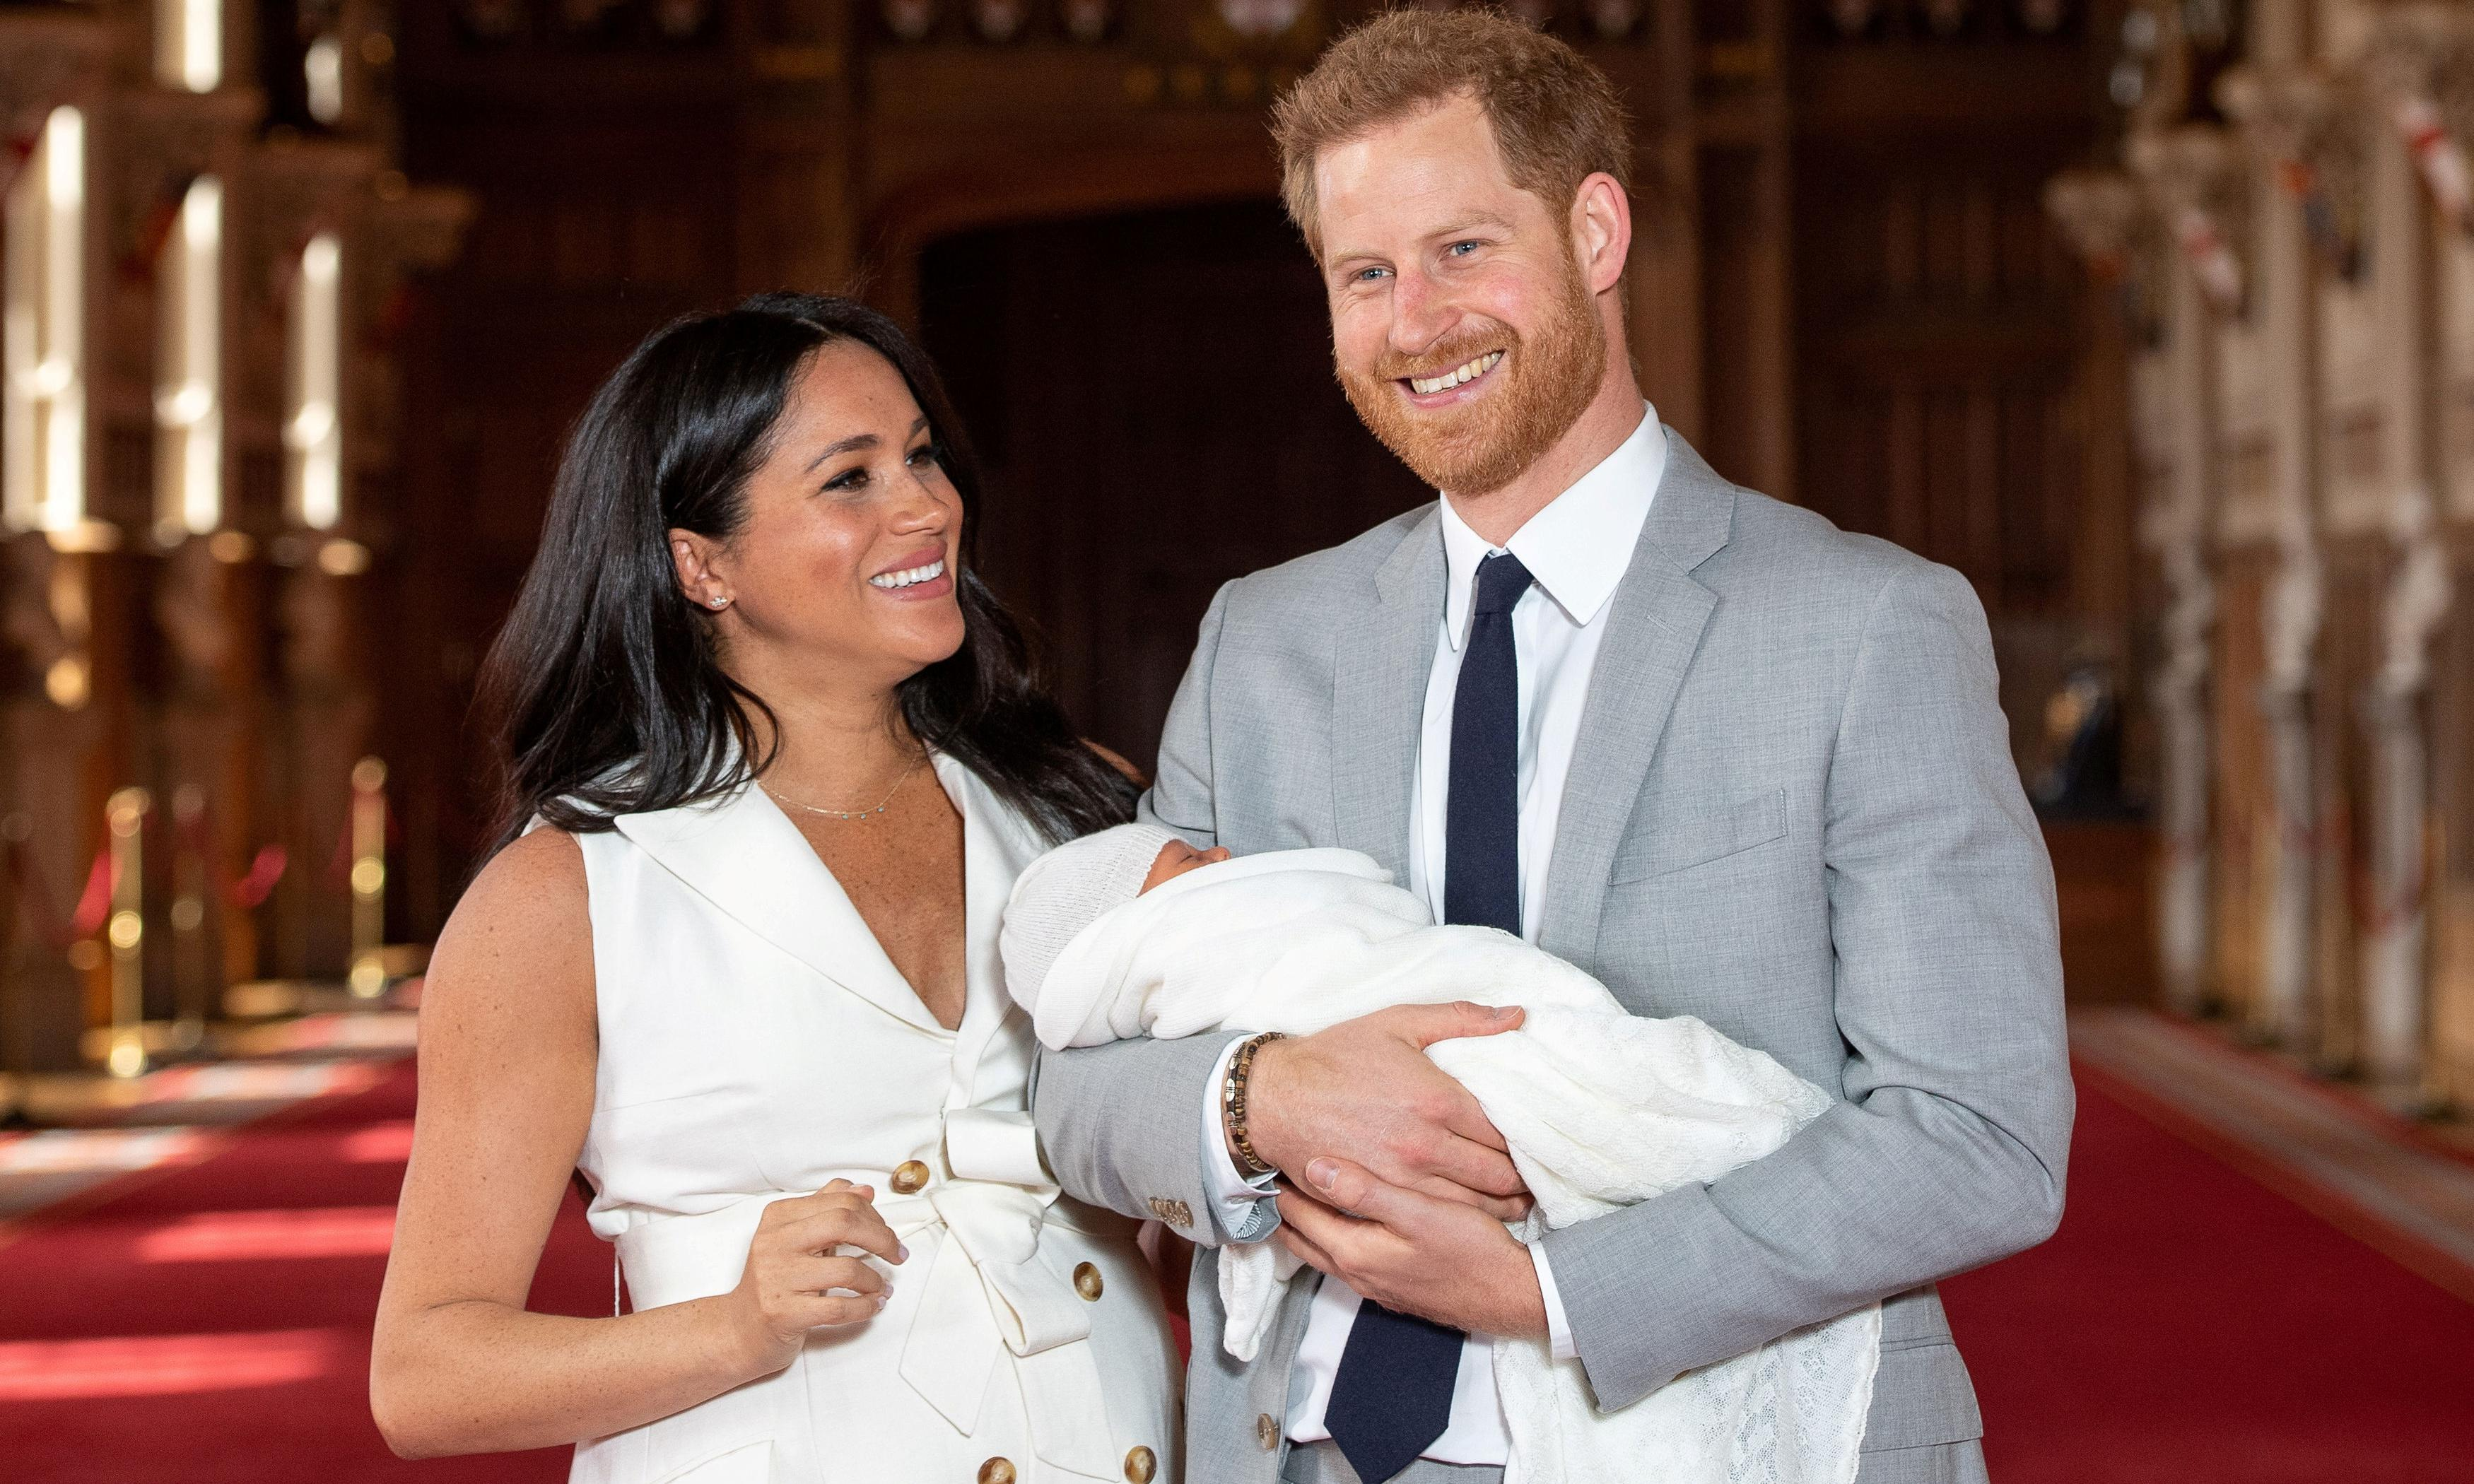 Meghan Markle is a trailblazer, but does she know how to raise an Englishman? Luckily, I do...